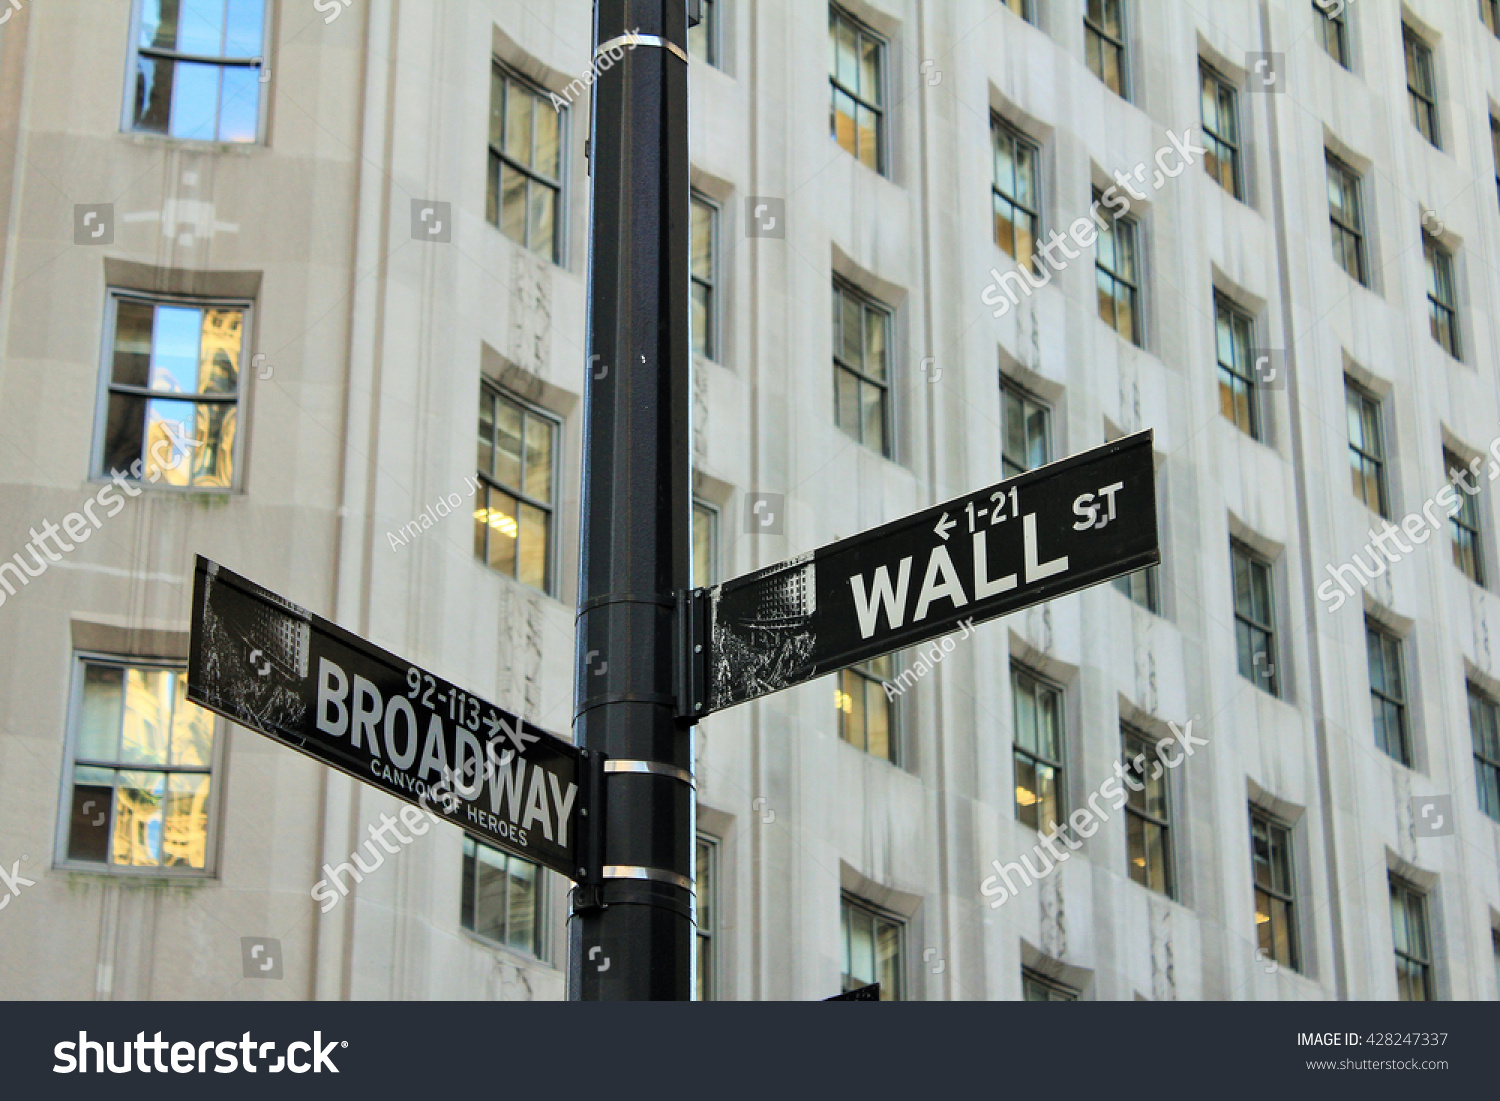 Wall Street and Broadway corner sign in New York